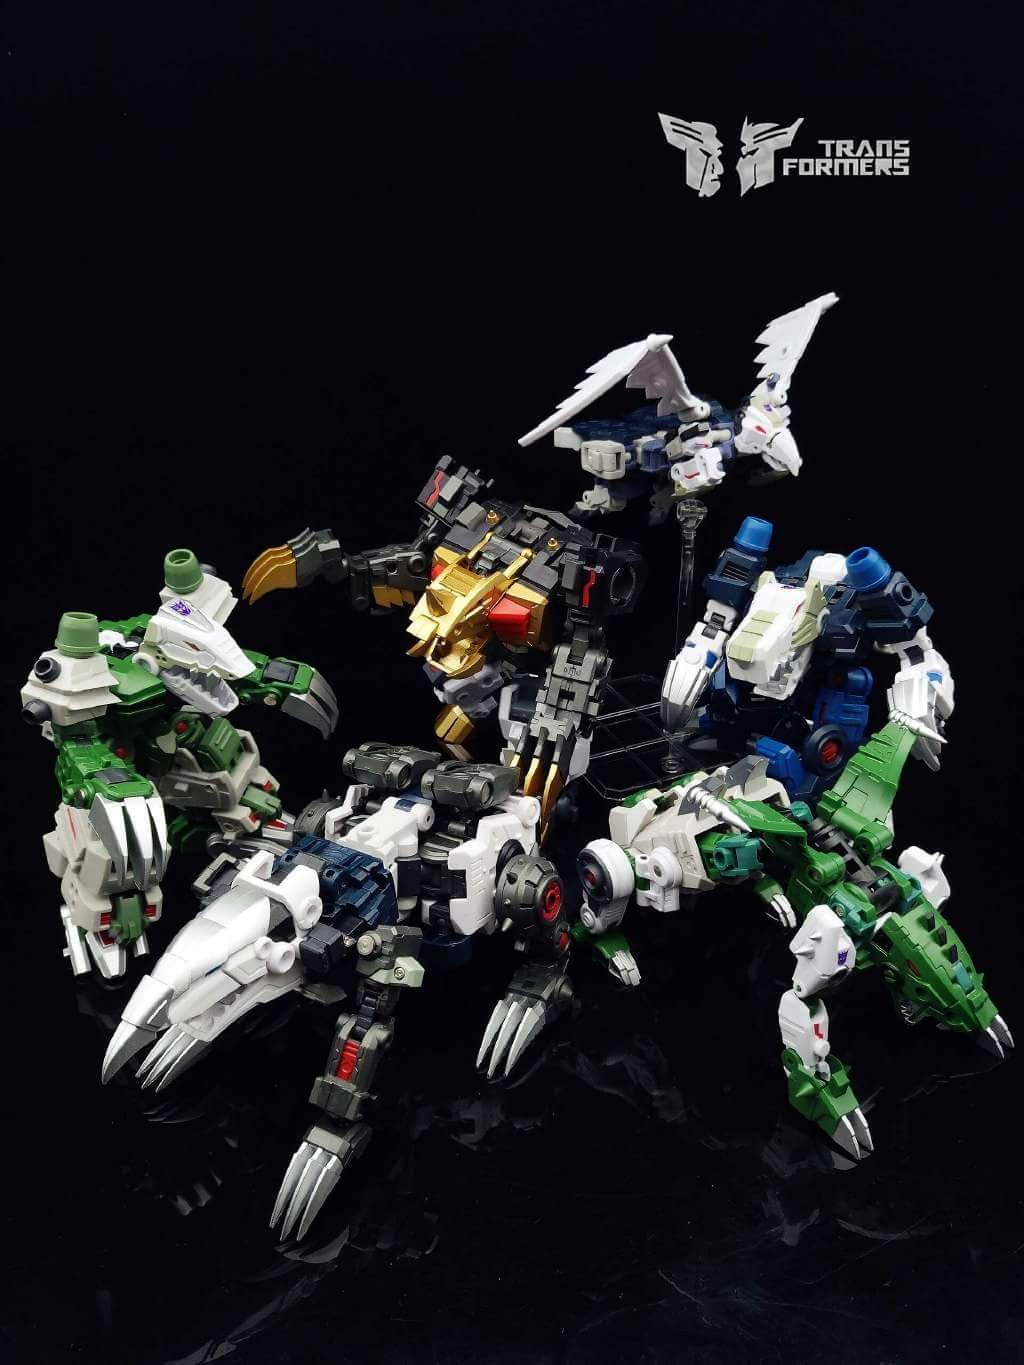 [FansProject] Produit Tiers - Jouet Saurus Ryu-oh aka Dinoking (Victory) | Monstructor (USA) - Page 2 6M0UM4s3